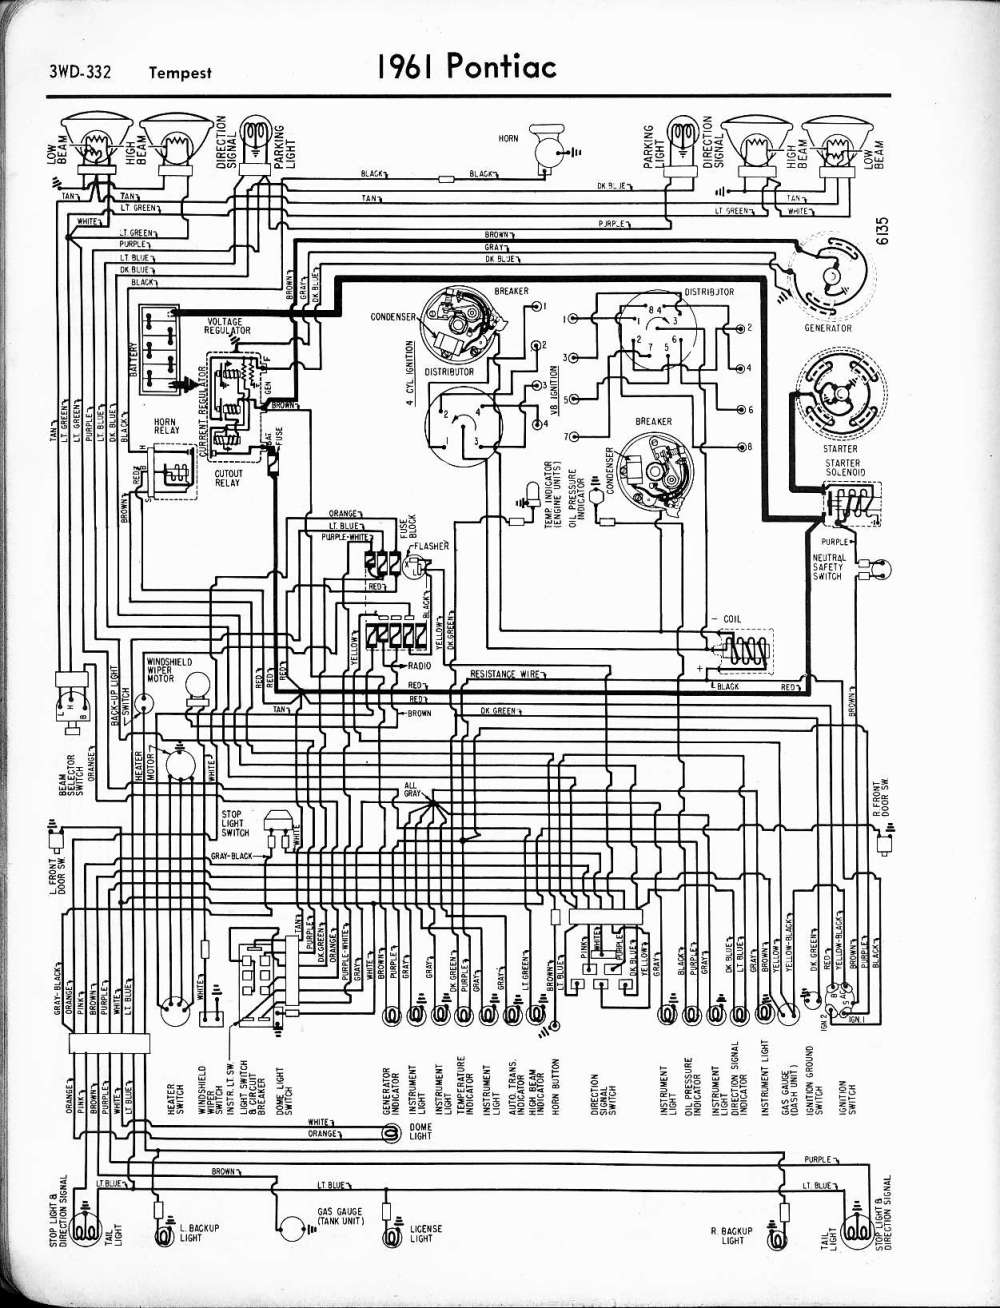 medium resolution of pontiac wiring 1957 1965 wiring diagrams of 1961 pontiac tempest